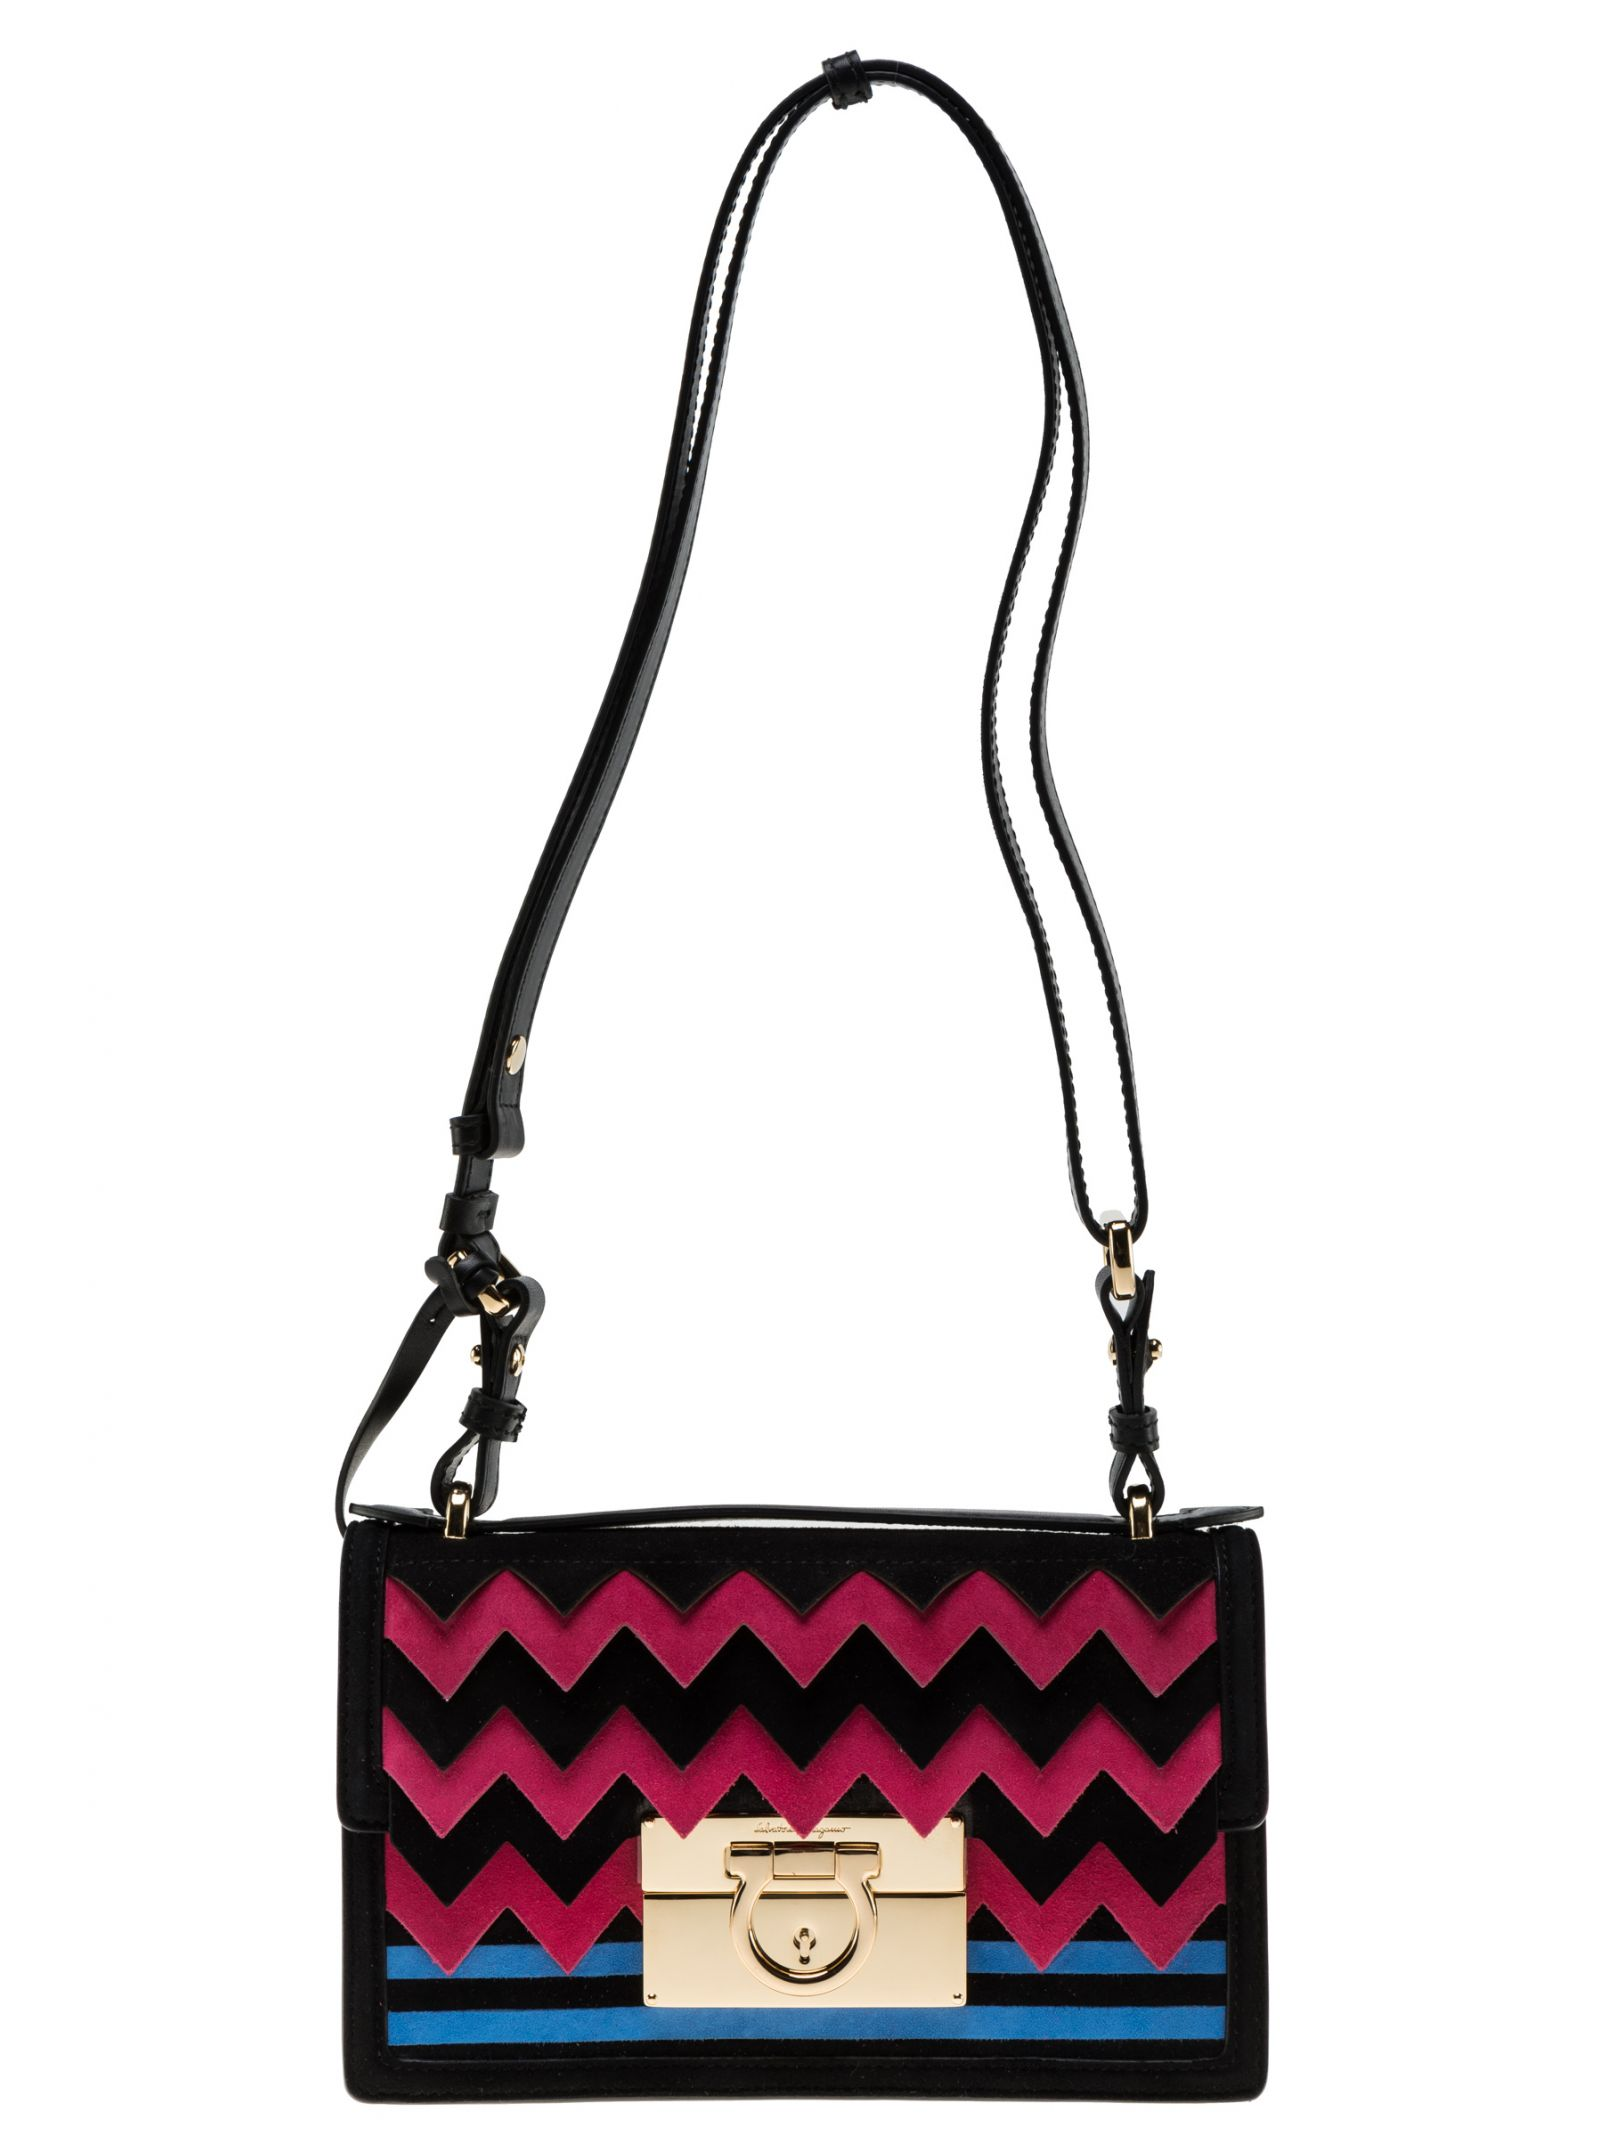 Salvatore Ferragamo Gancio Lock Shoulder Bag